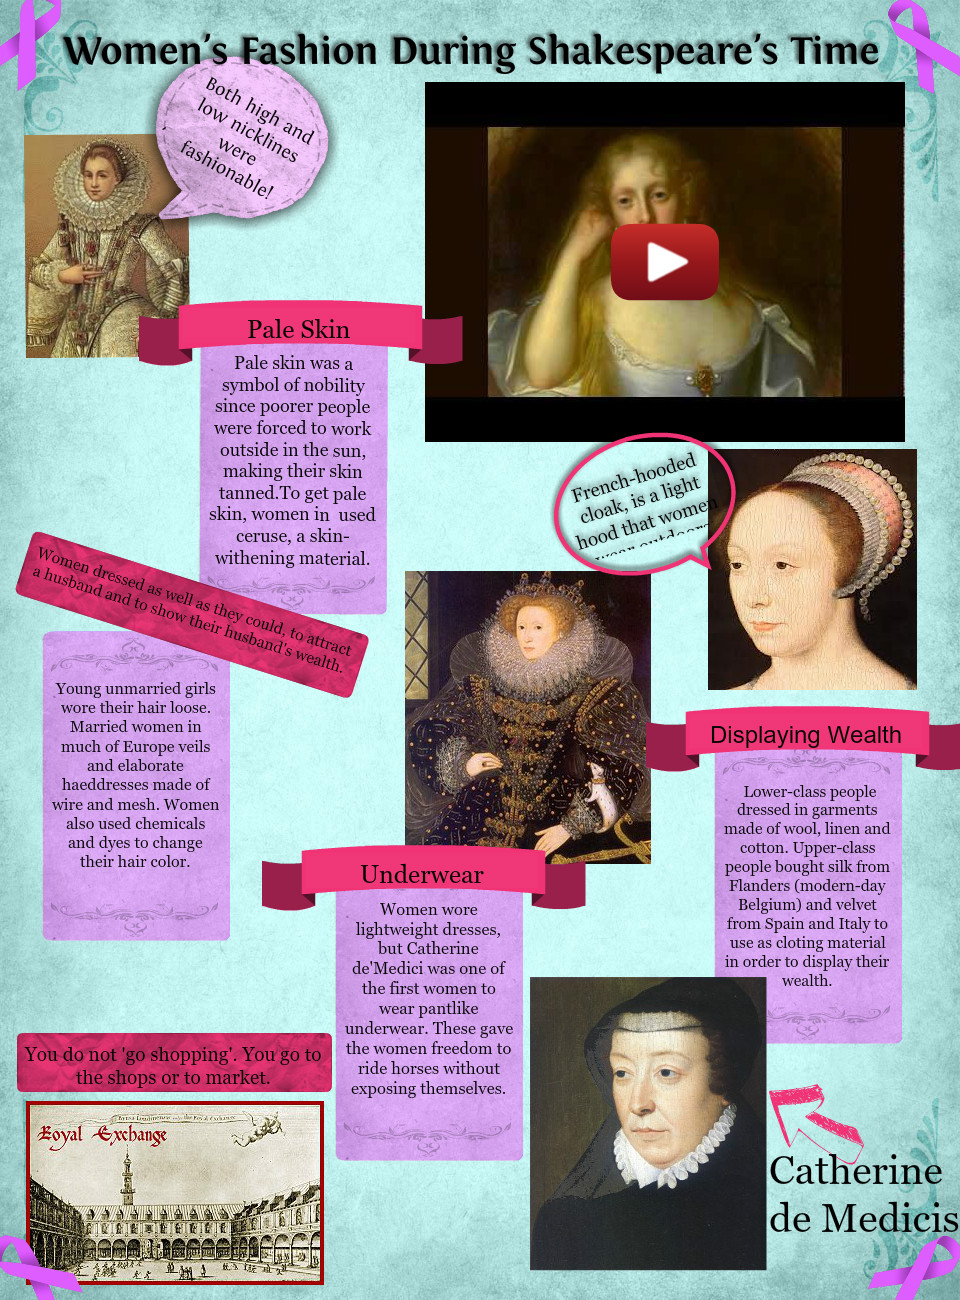 Women's Fashion During Shakespeare's Time